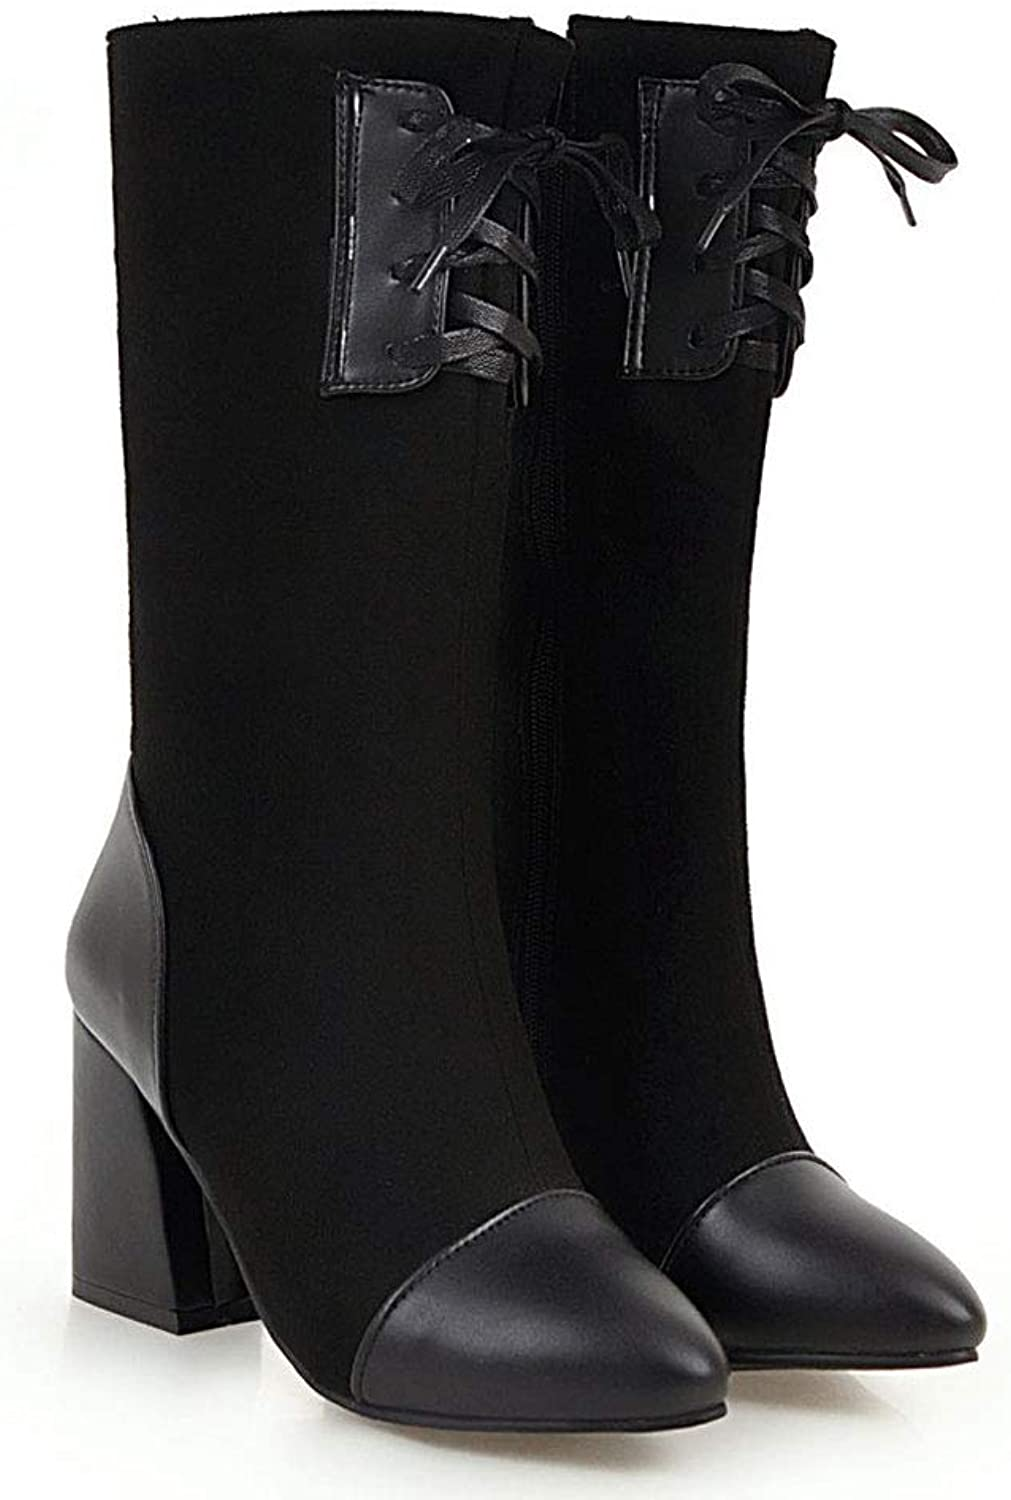 Laceing High Boots, High Heels Thick with Knight Boots Pointed Waterproof Platform Slip Elastic Long Boots Comfortable Warm Women's Martin shoes